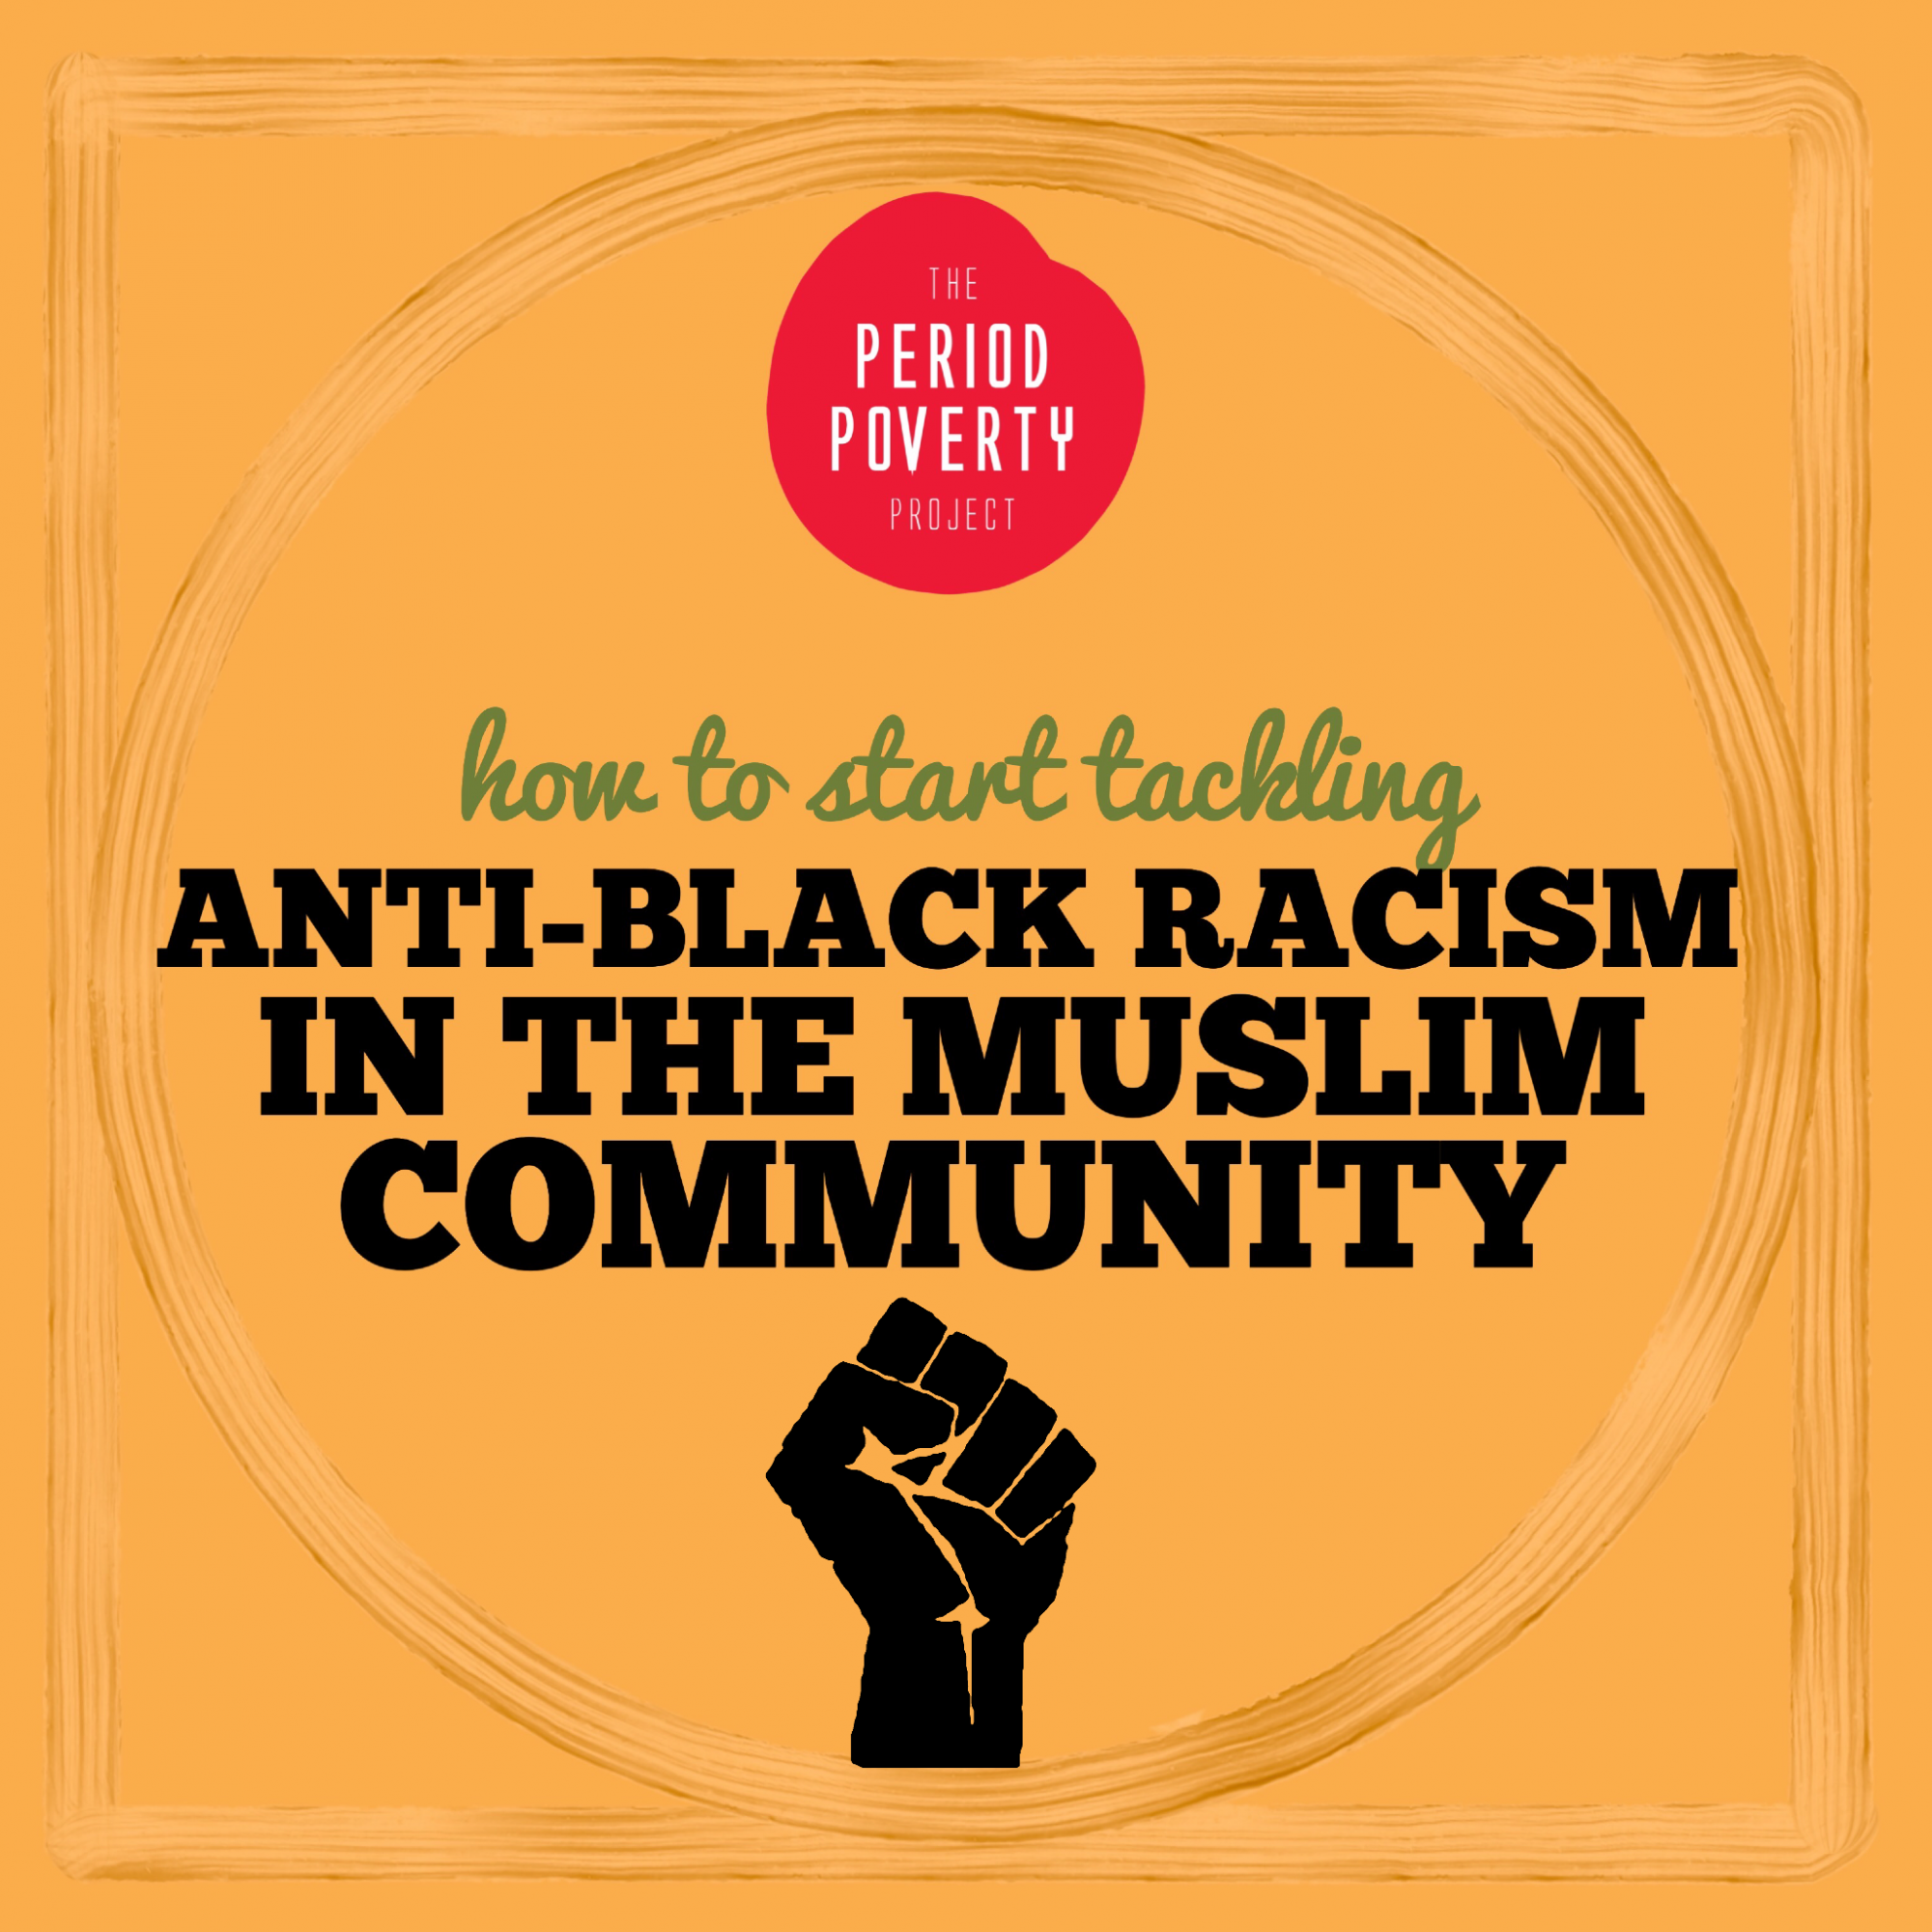 The Period Poverty Project: Addressing anti-Black racism